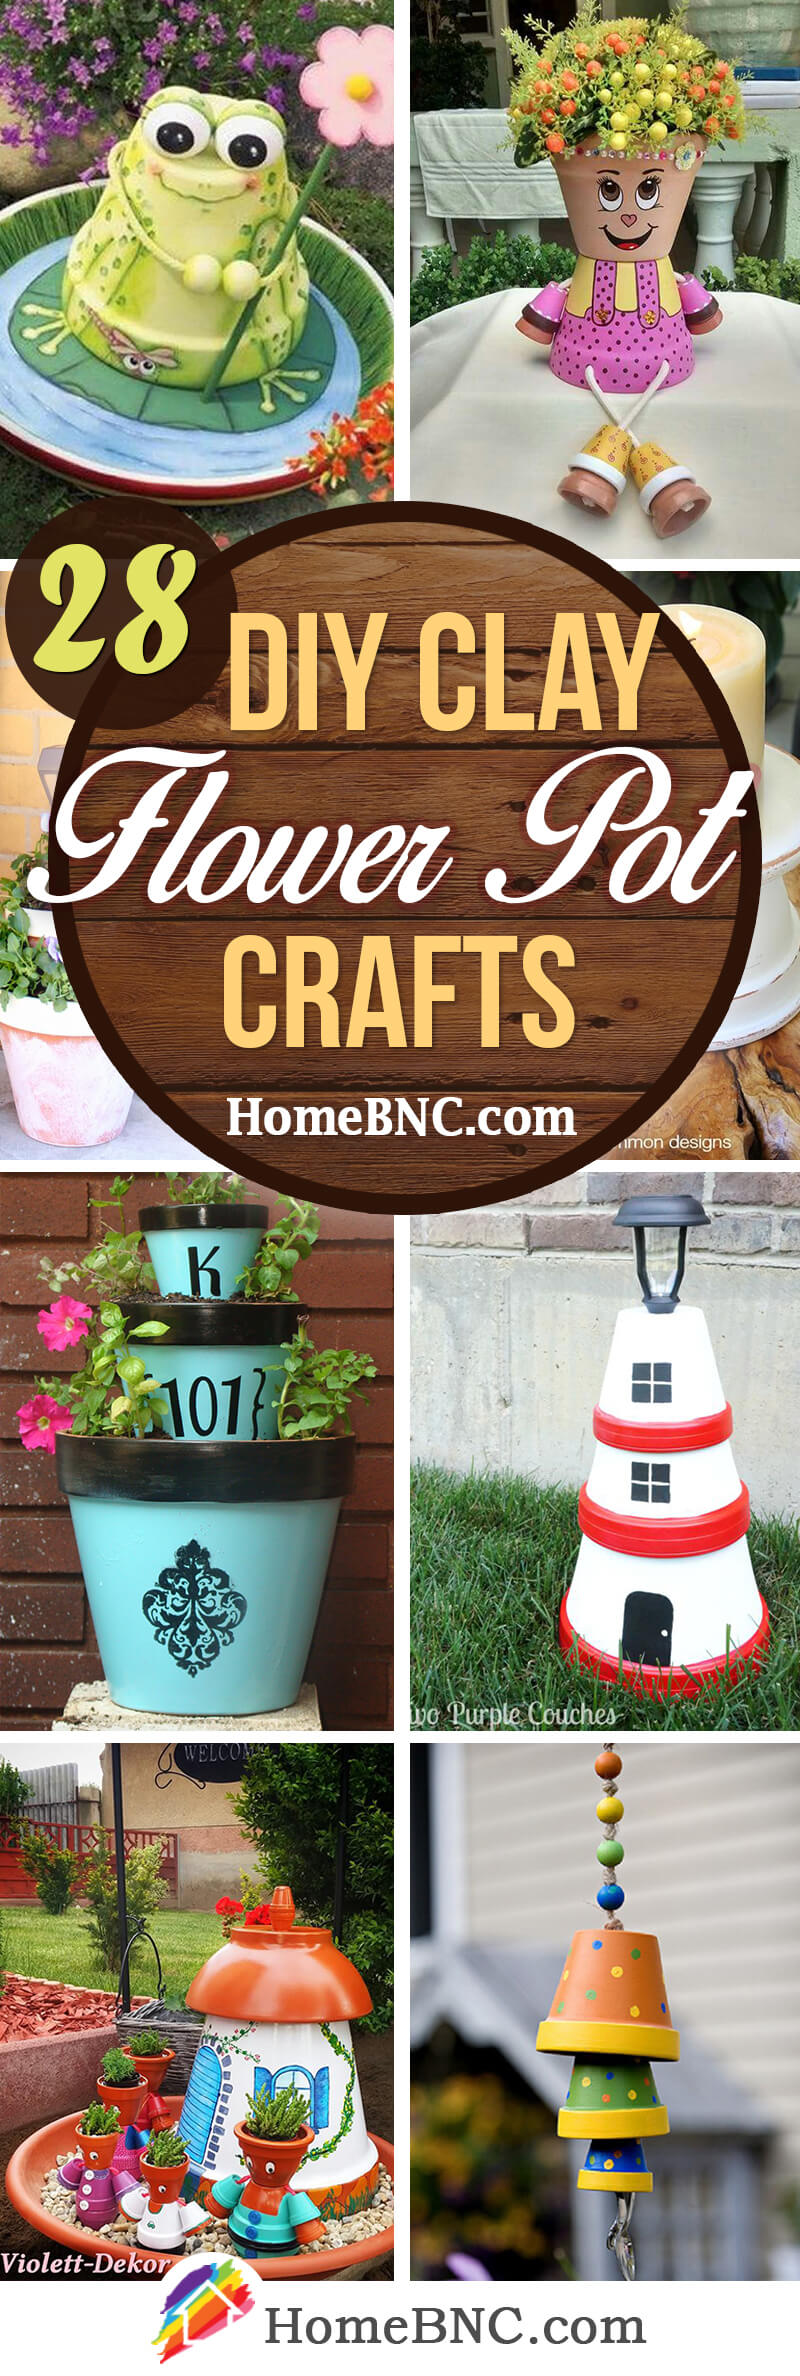 DIY Clay Flower Pots